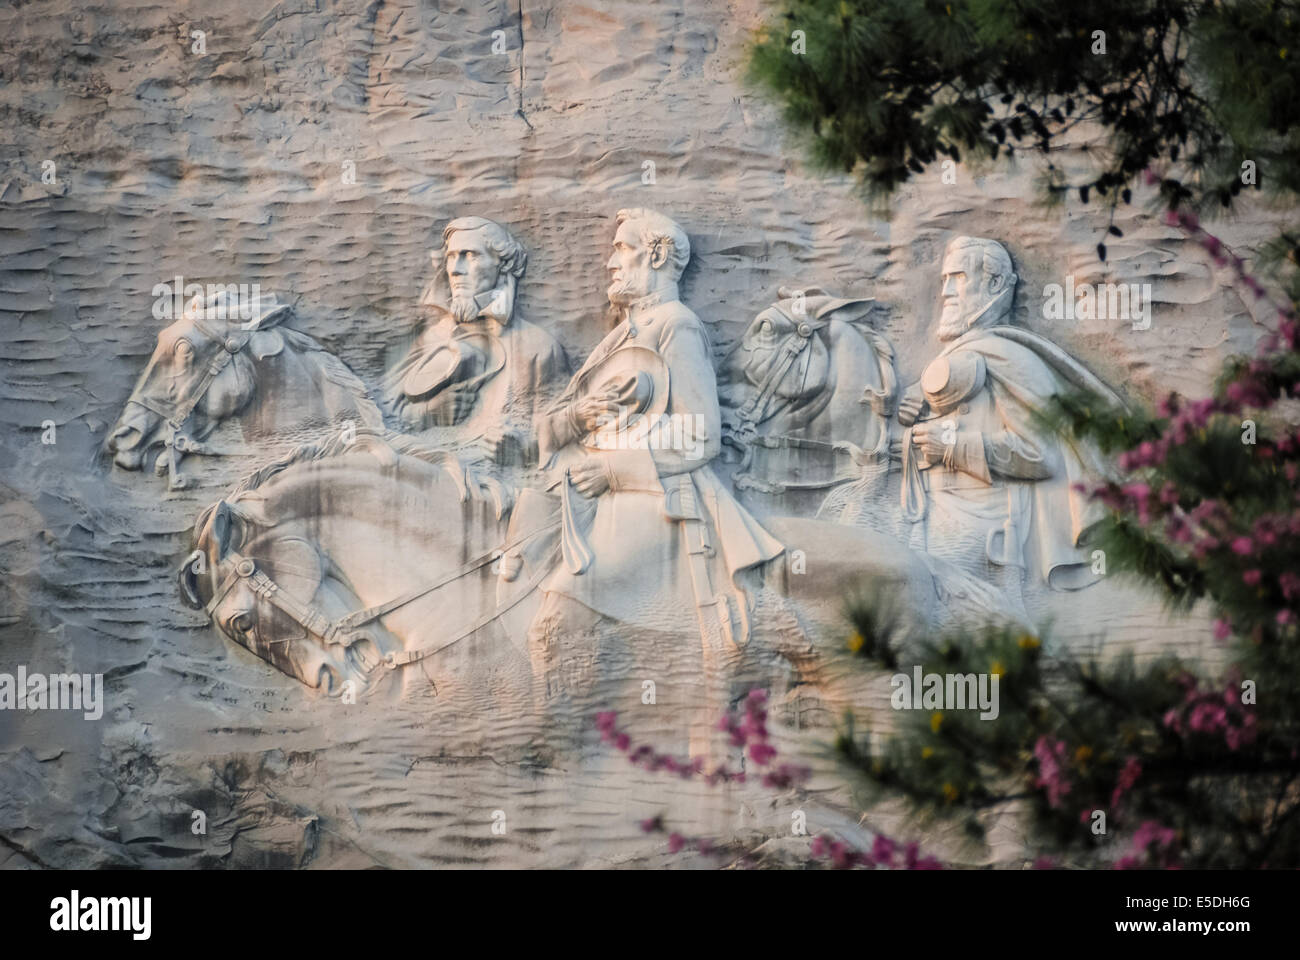 Memorial carving at stone mountain park in atlanta